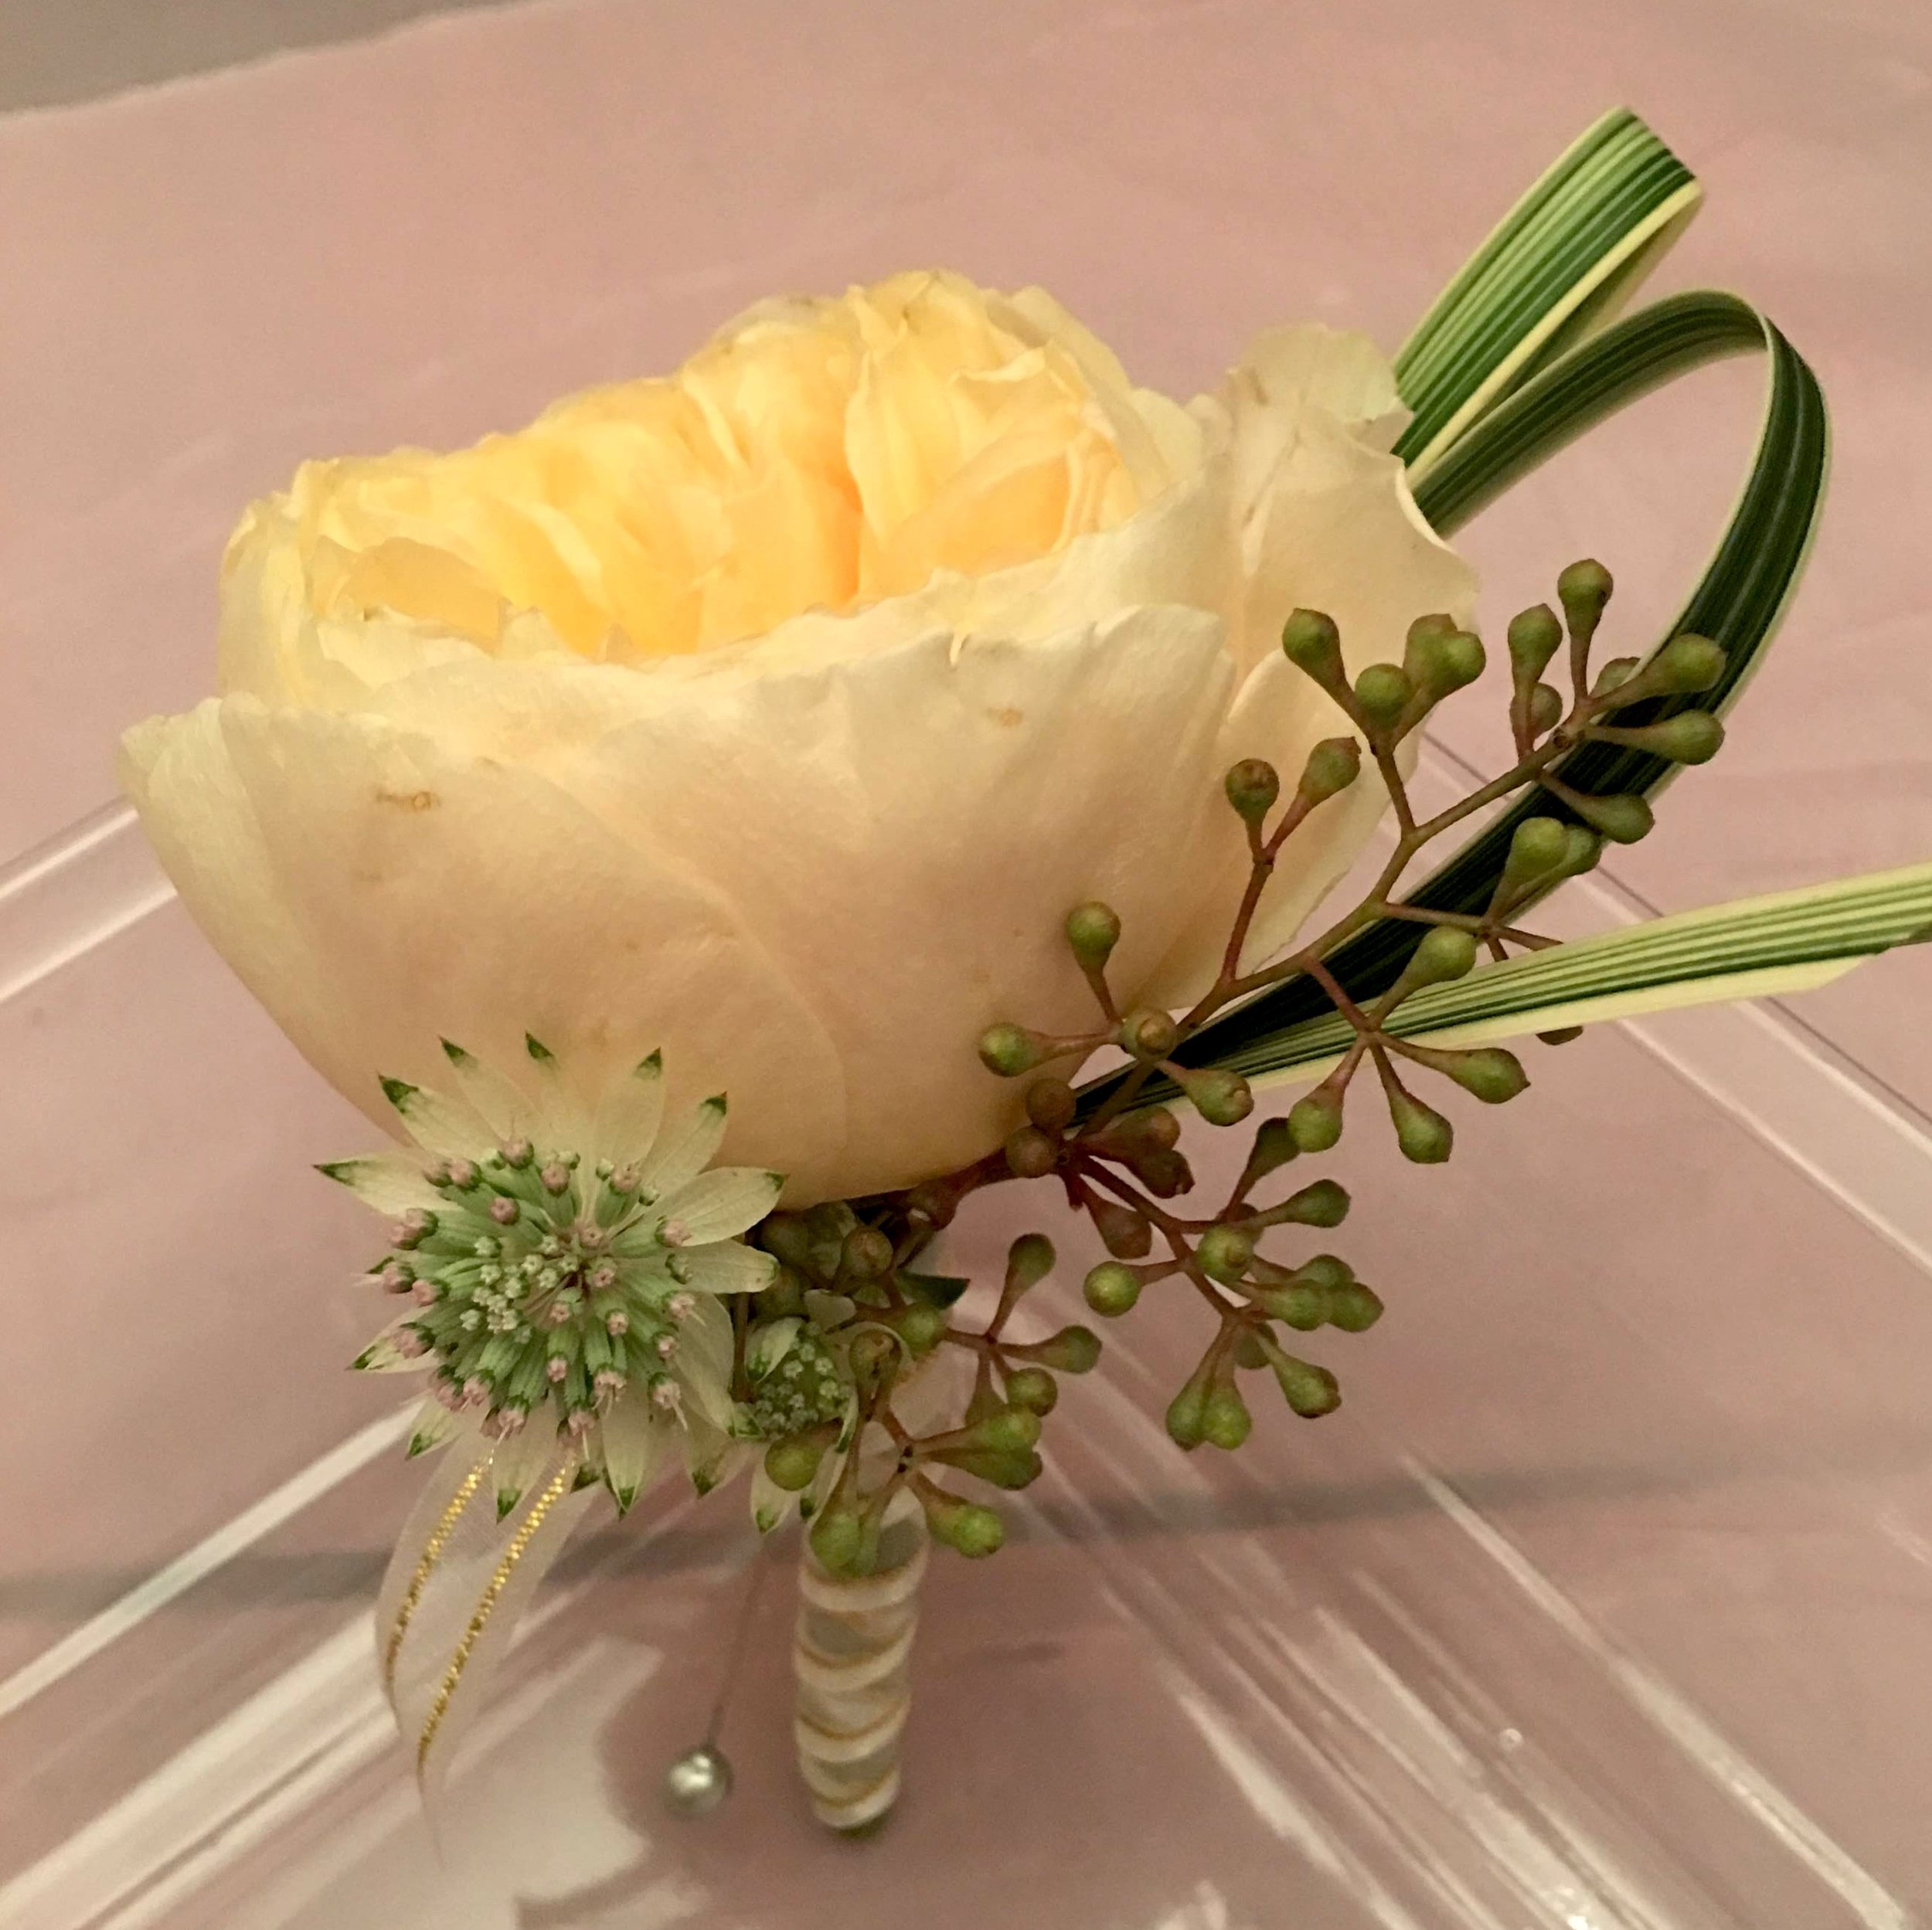 - Another simple, yet elegant boutonniere with the main focus on the peony. We just can't get over how exciting peonies can be!